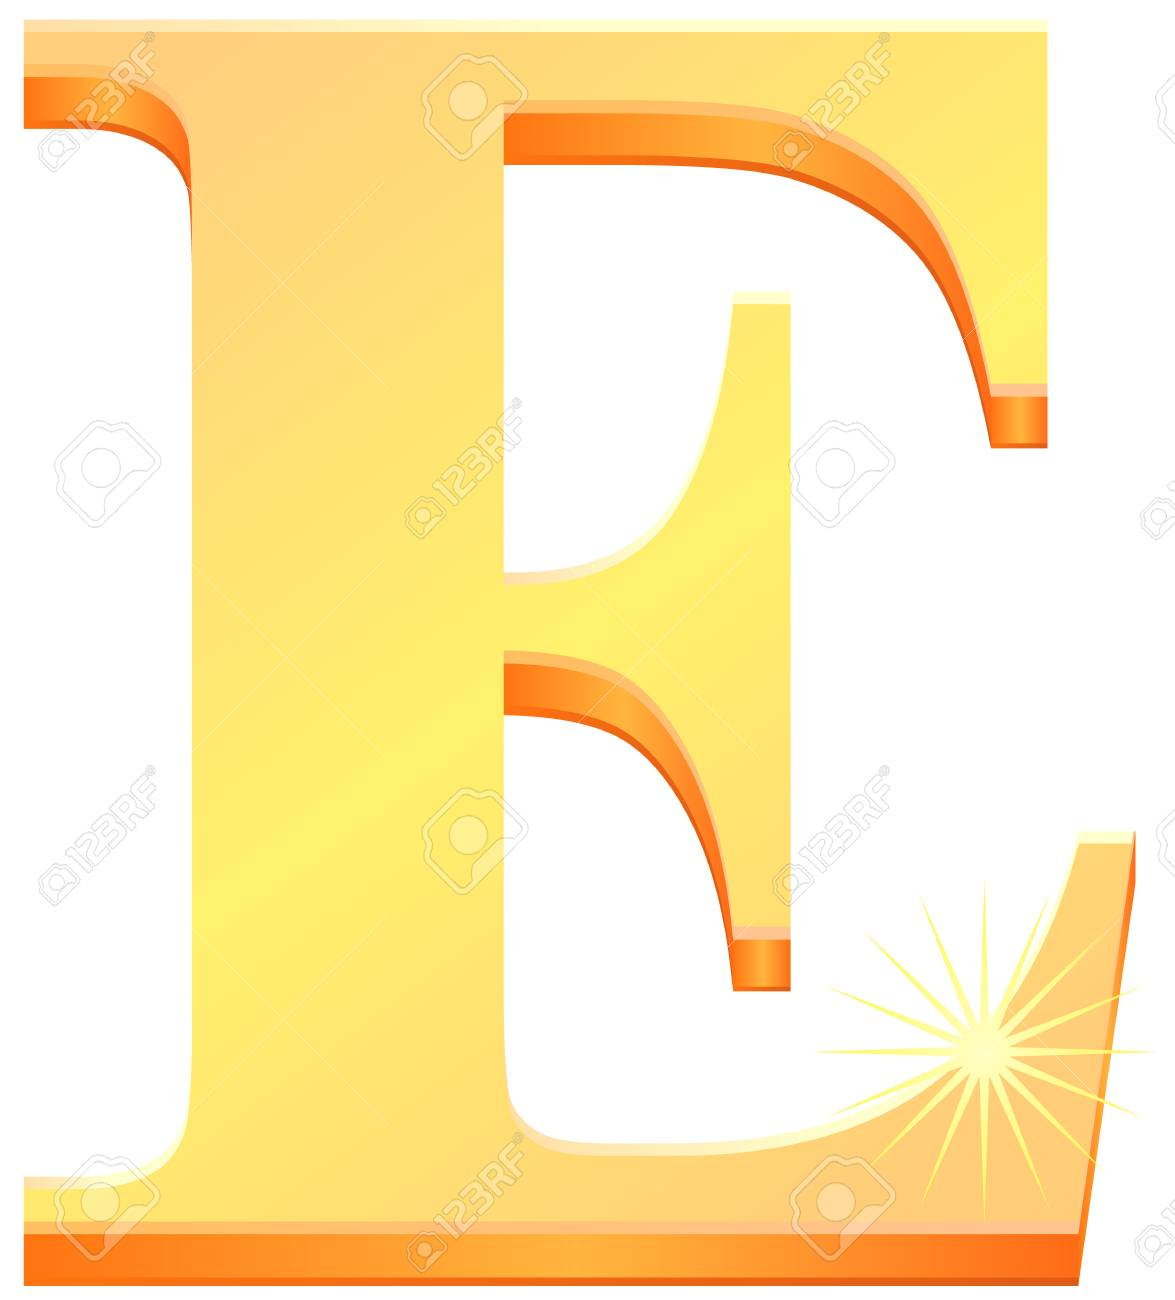 Gold Capital Letter E In 3D Vector Royalty Free Cliparts, Vectors